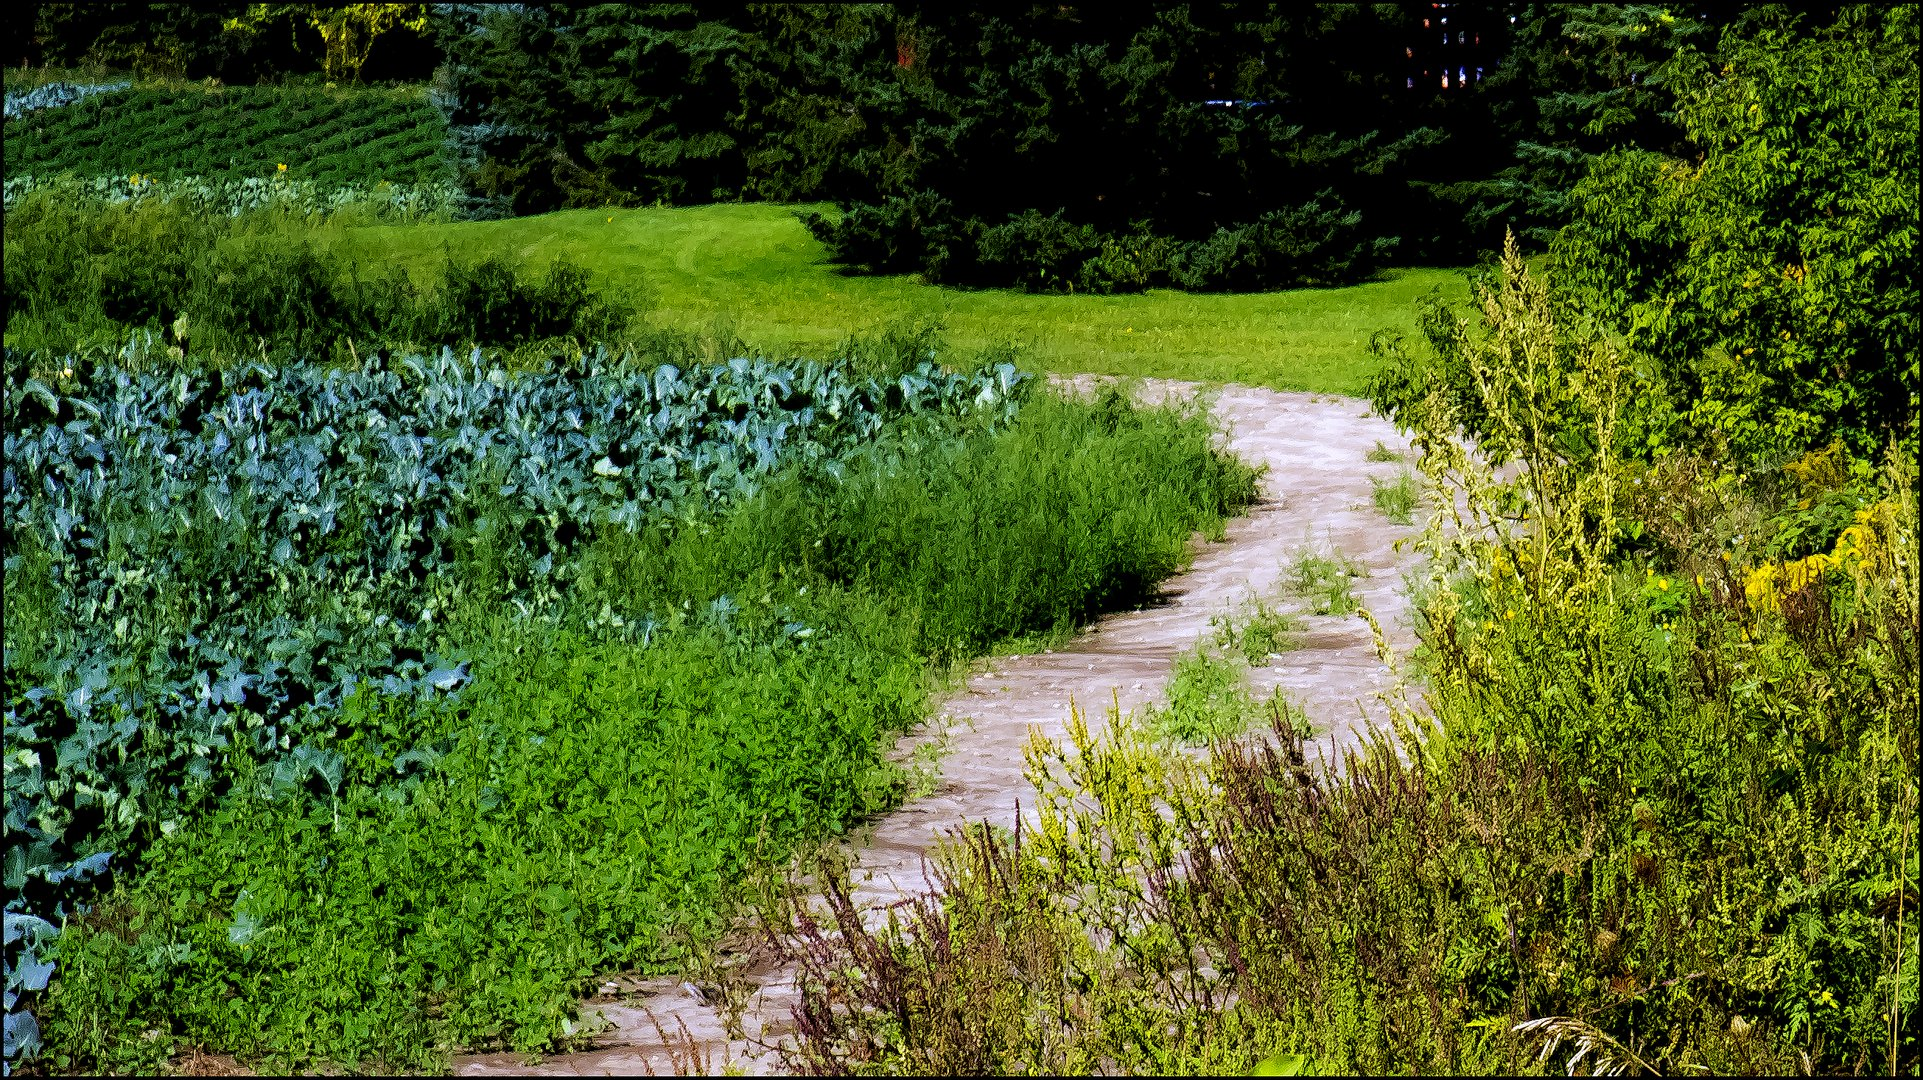 THE OVERGROWN PATH